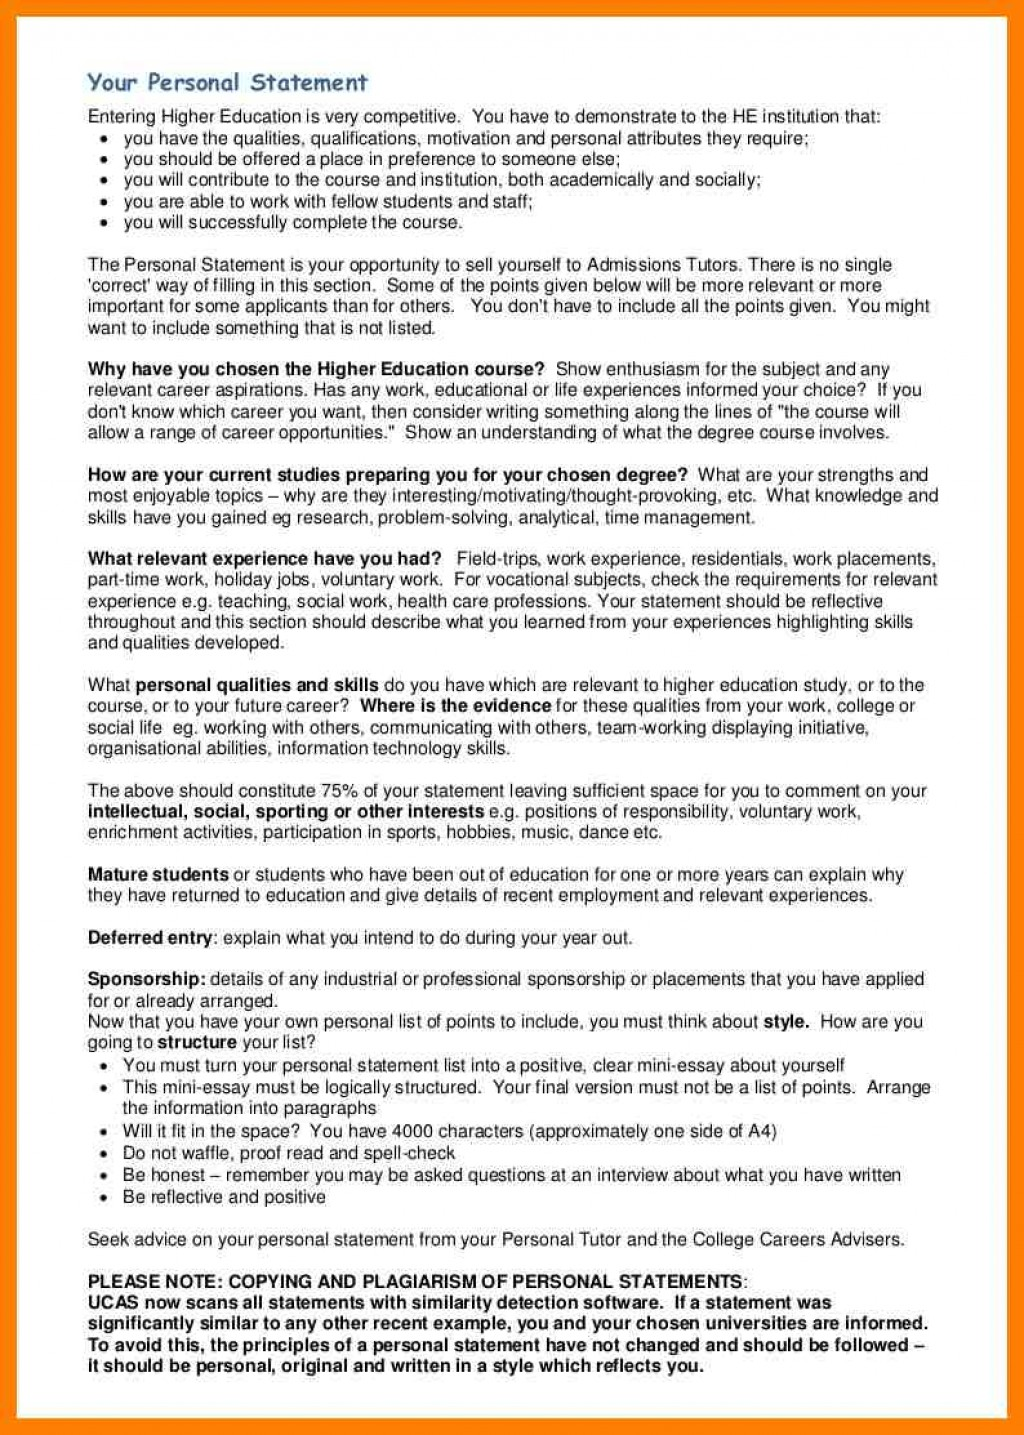 021 Why Career Is Important In Our Life Essay Example Explain Your Financial Need Yourpersonalstatementnotesproforma Phpapp01 Thumbnail Frightening Large